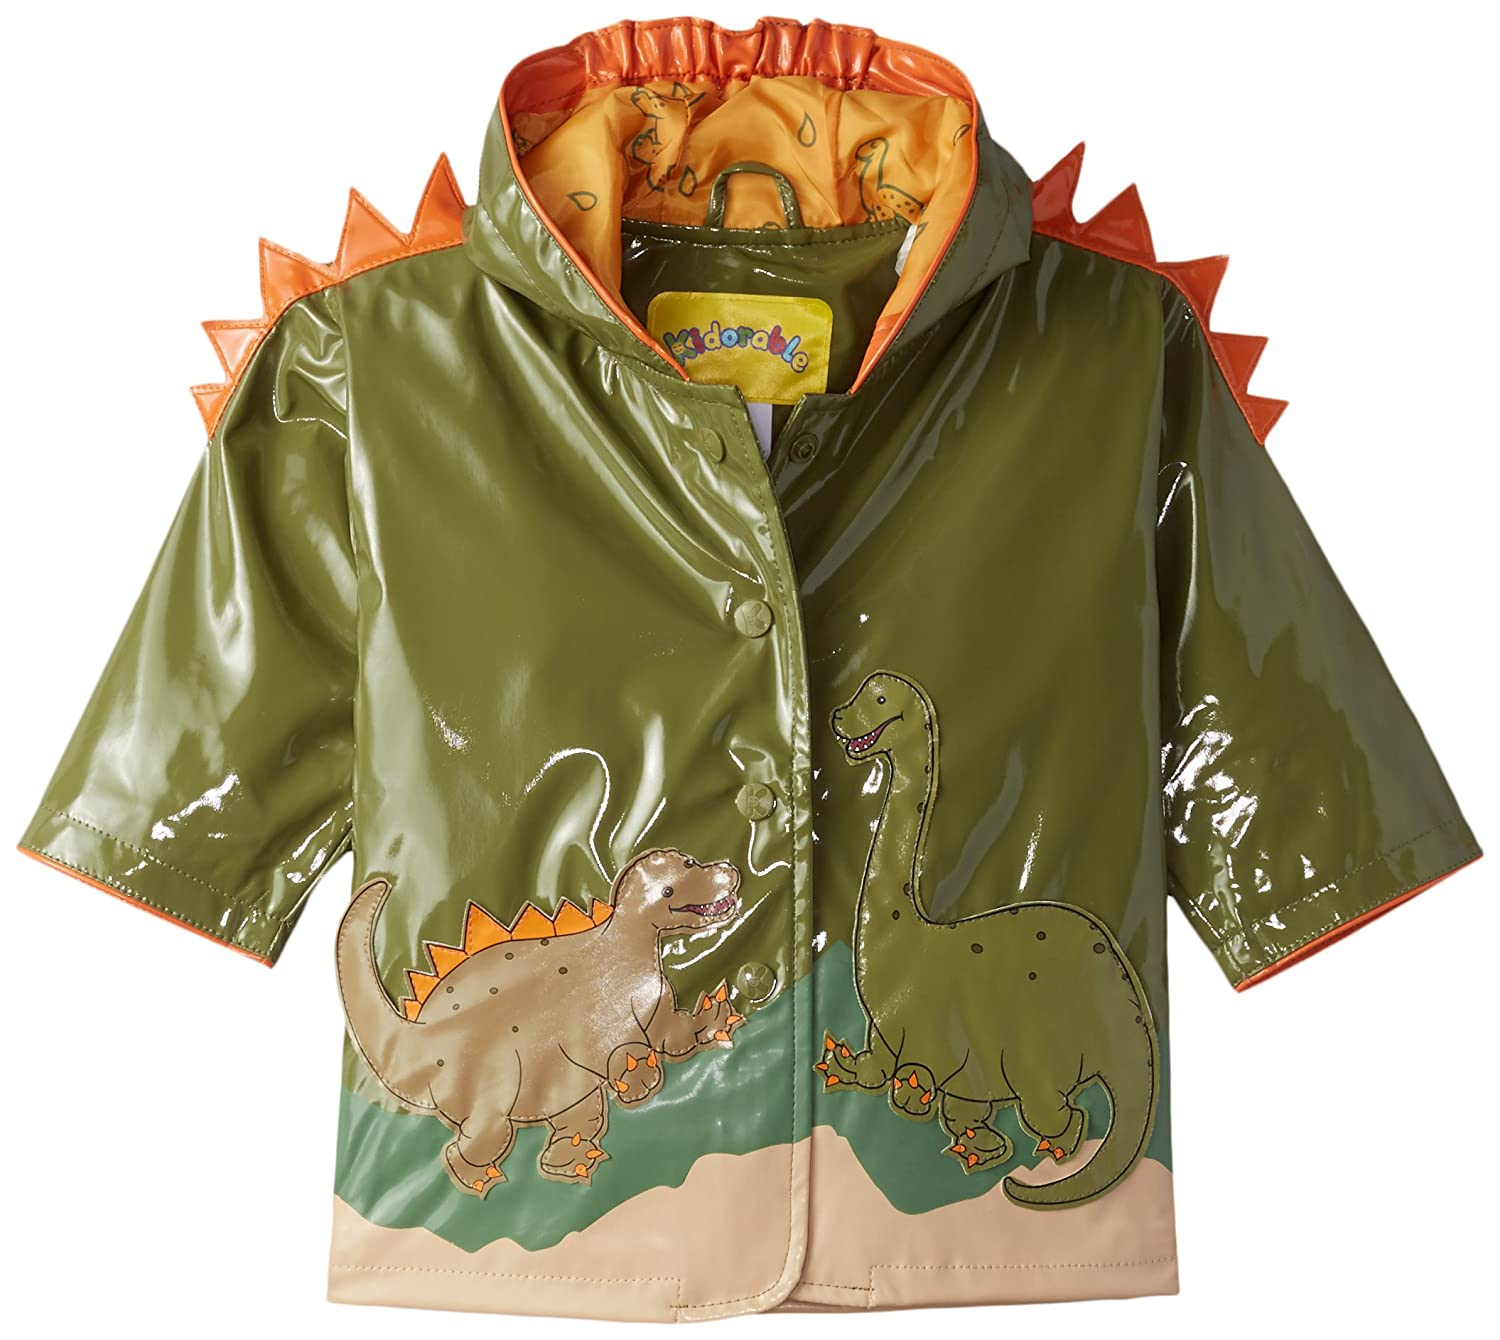 Kidorable Green Dinosaur PU All Weather Raincoat for Boys With Fun Dino Spikes and Volcano